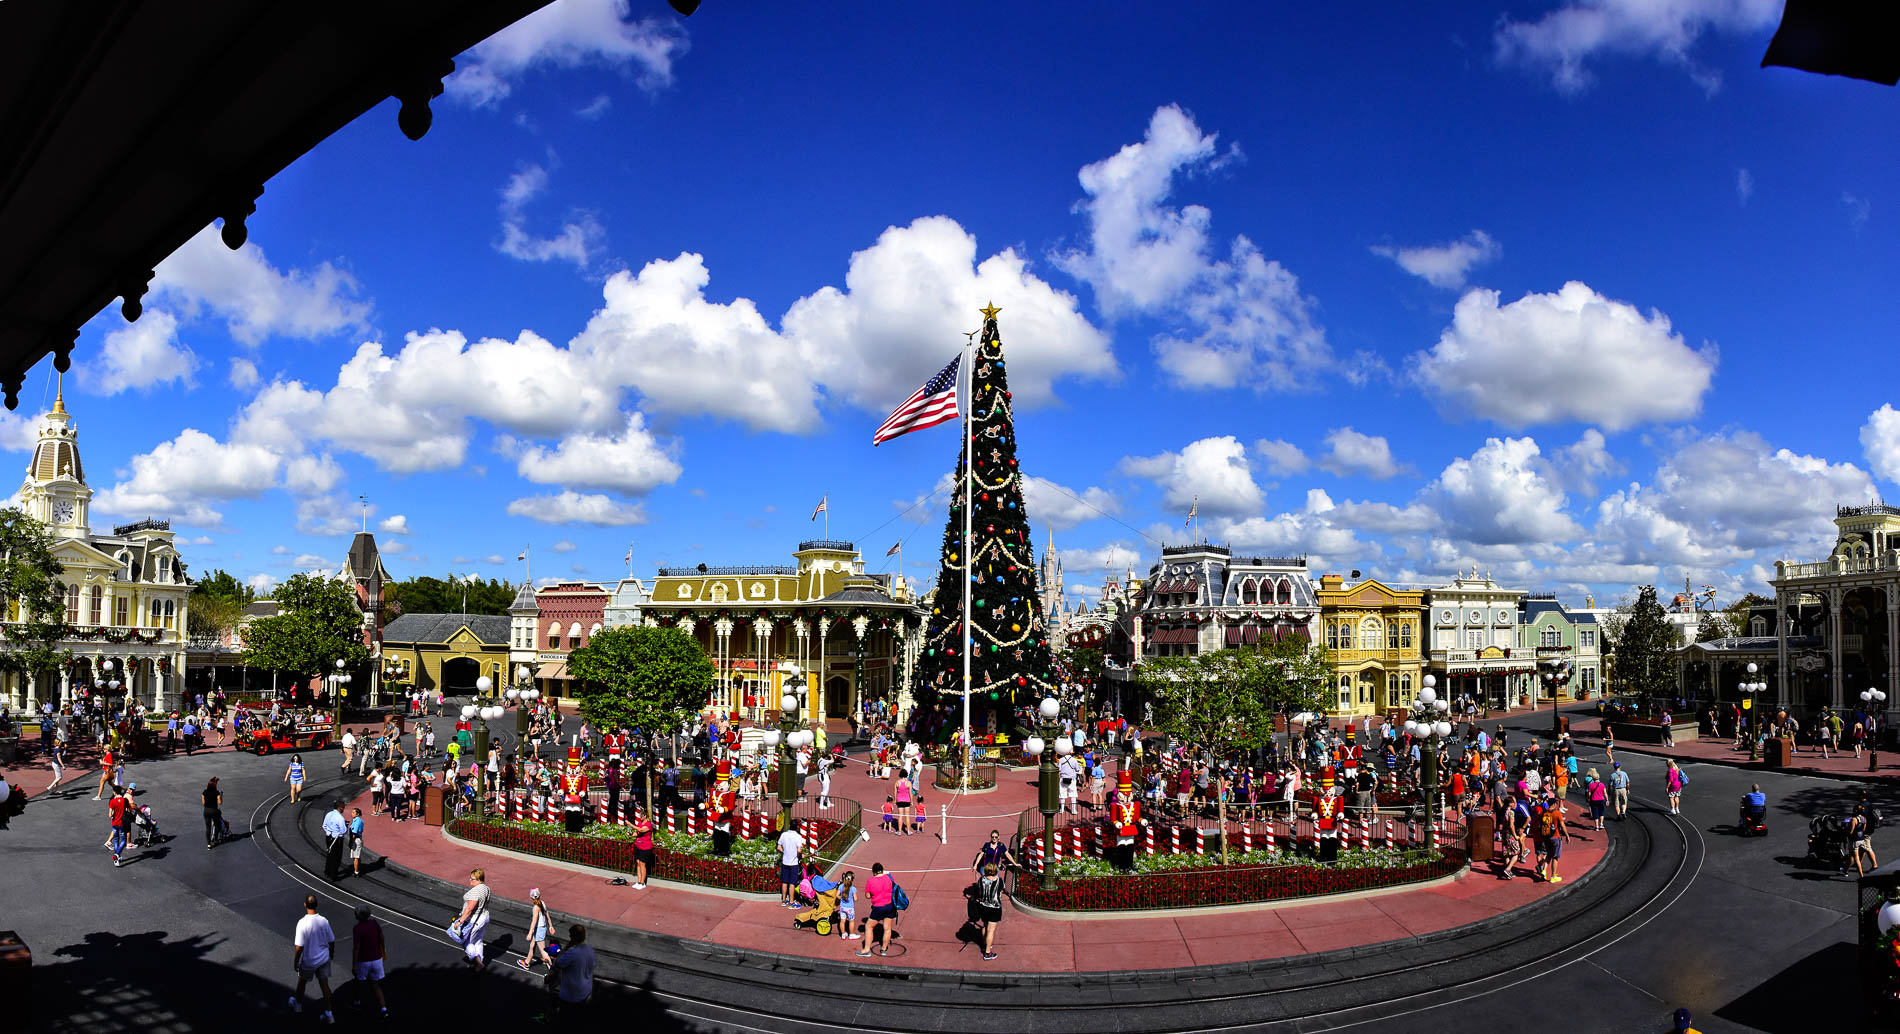 christmas at the magic kingdom shows up right after halloween in a big way with the decorations around the square on main street photo by donald fink - When Is Disney World Decorated For Christmas